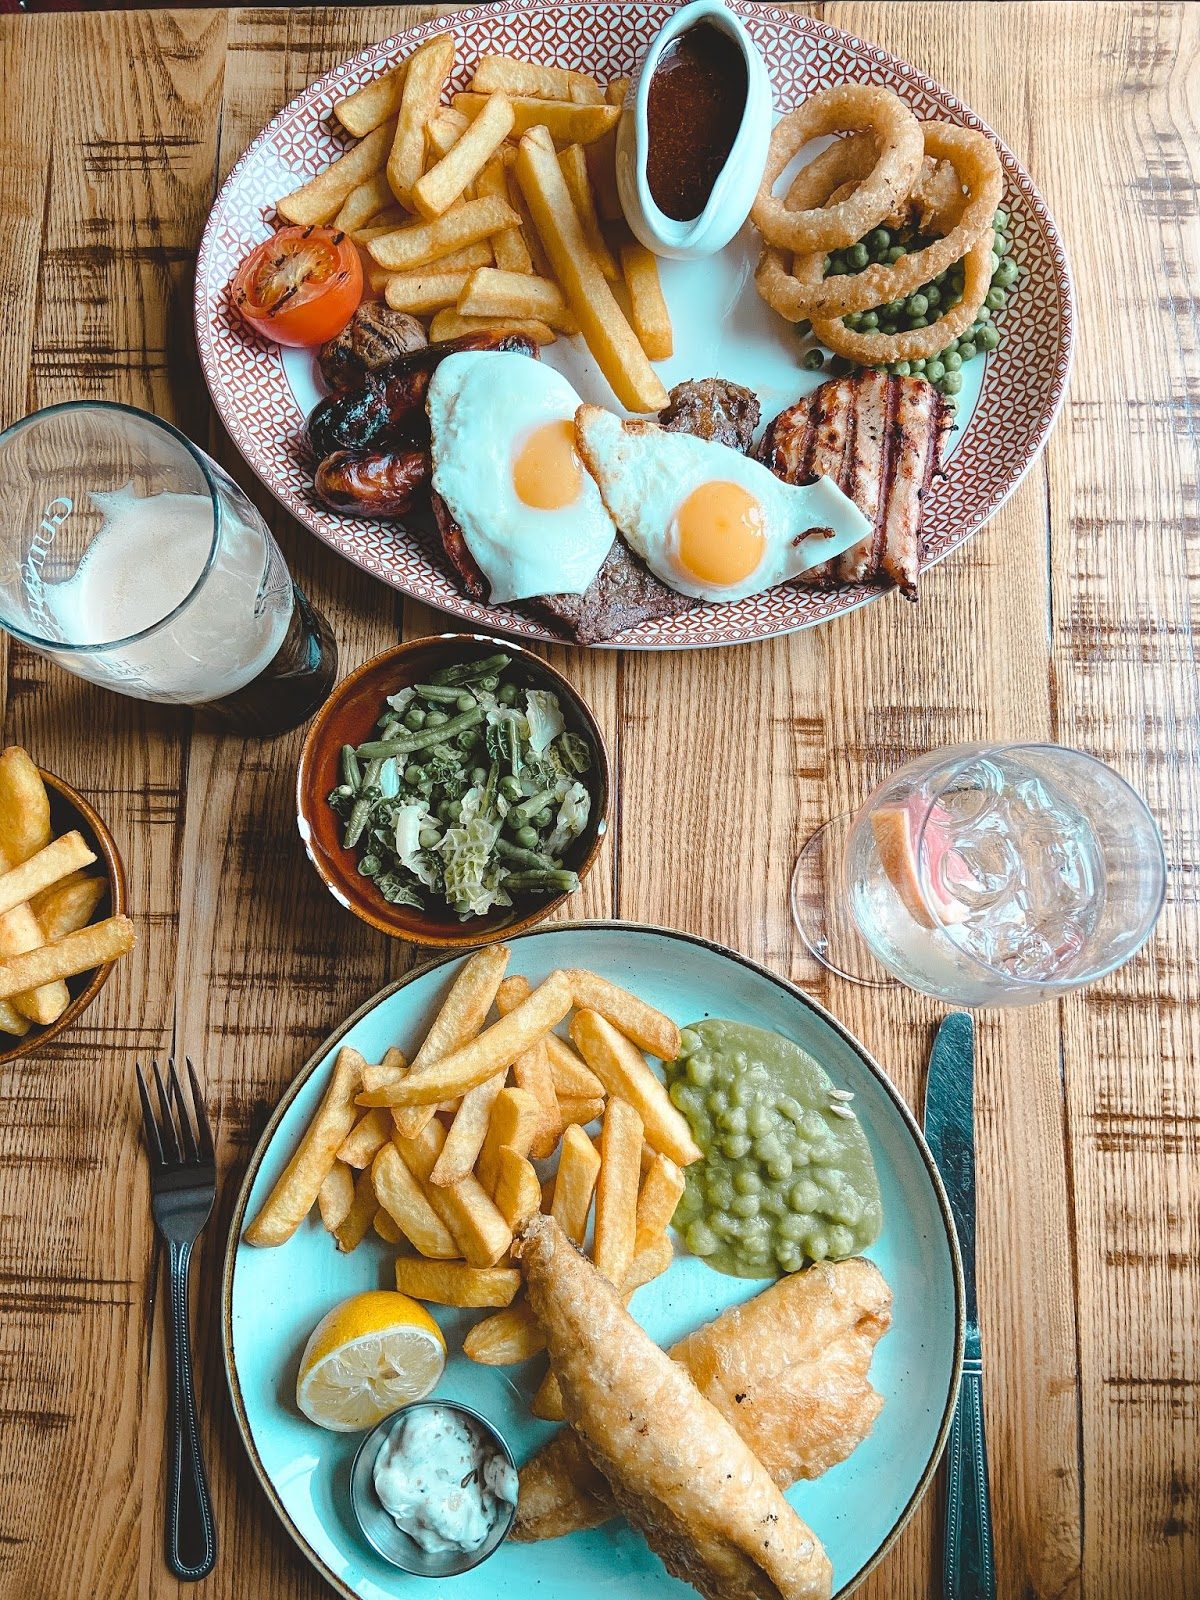 Where to eat in Birmingham - sarahlaublogs